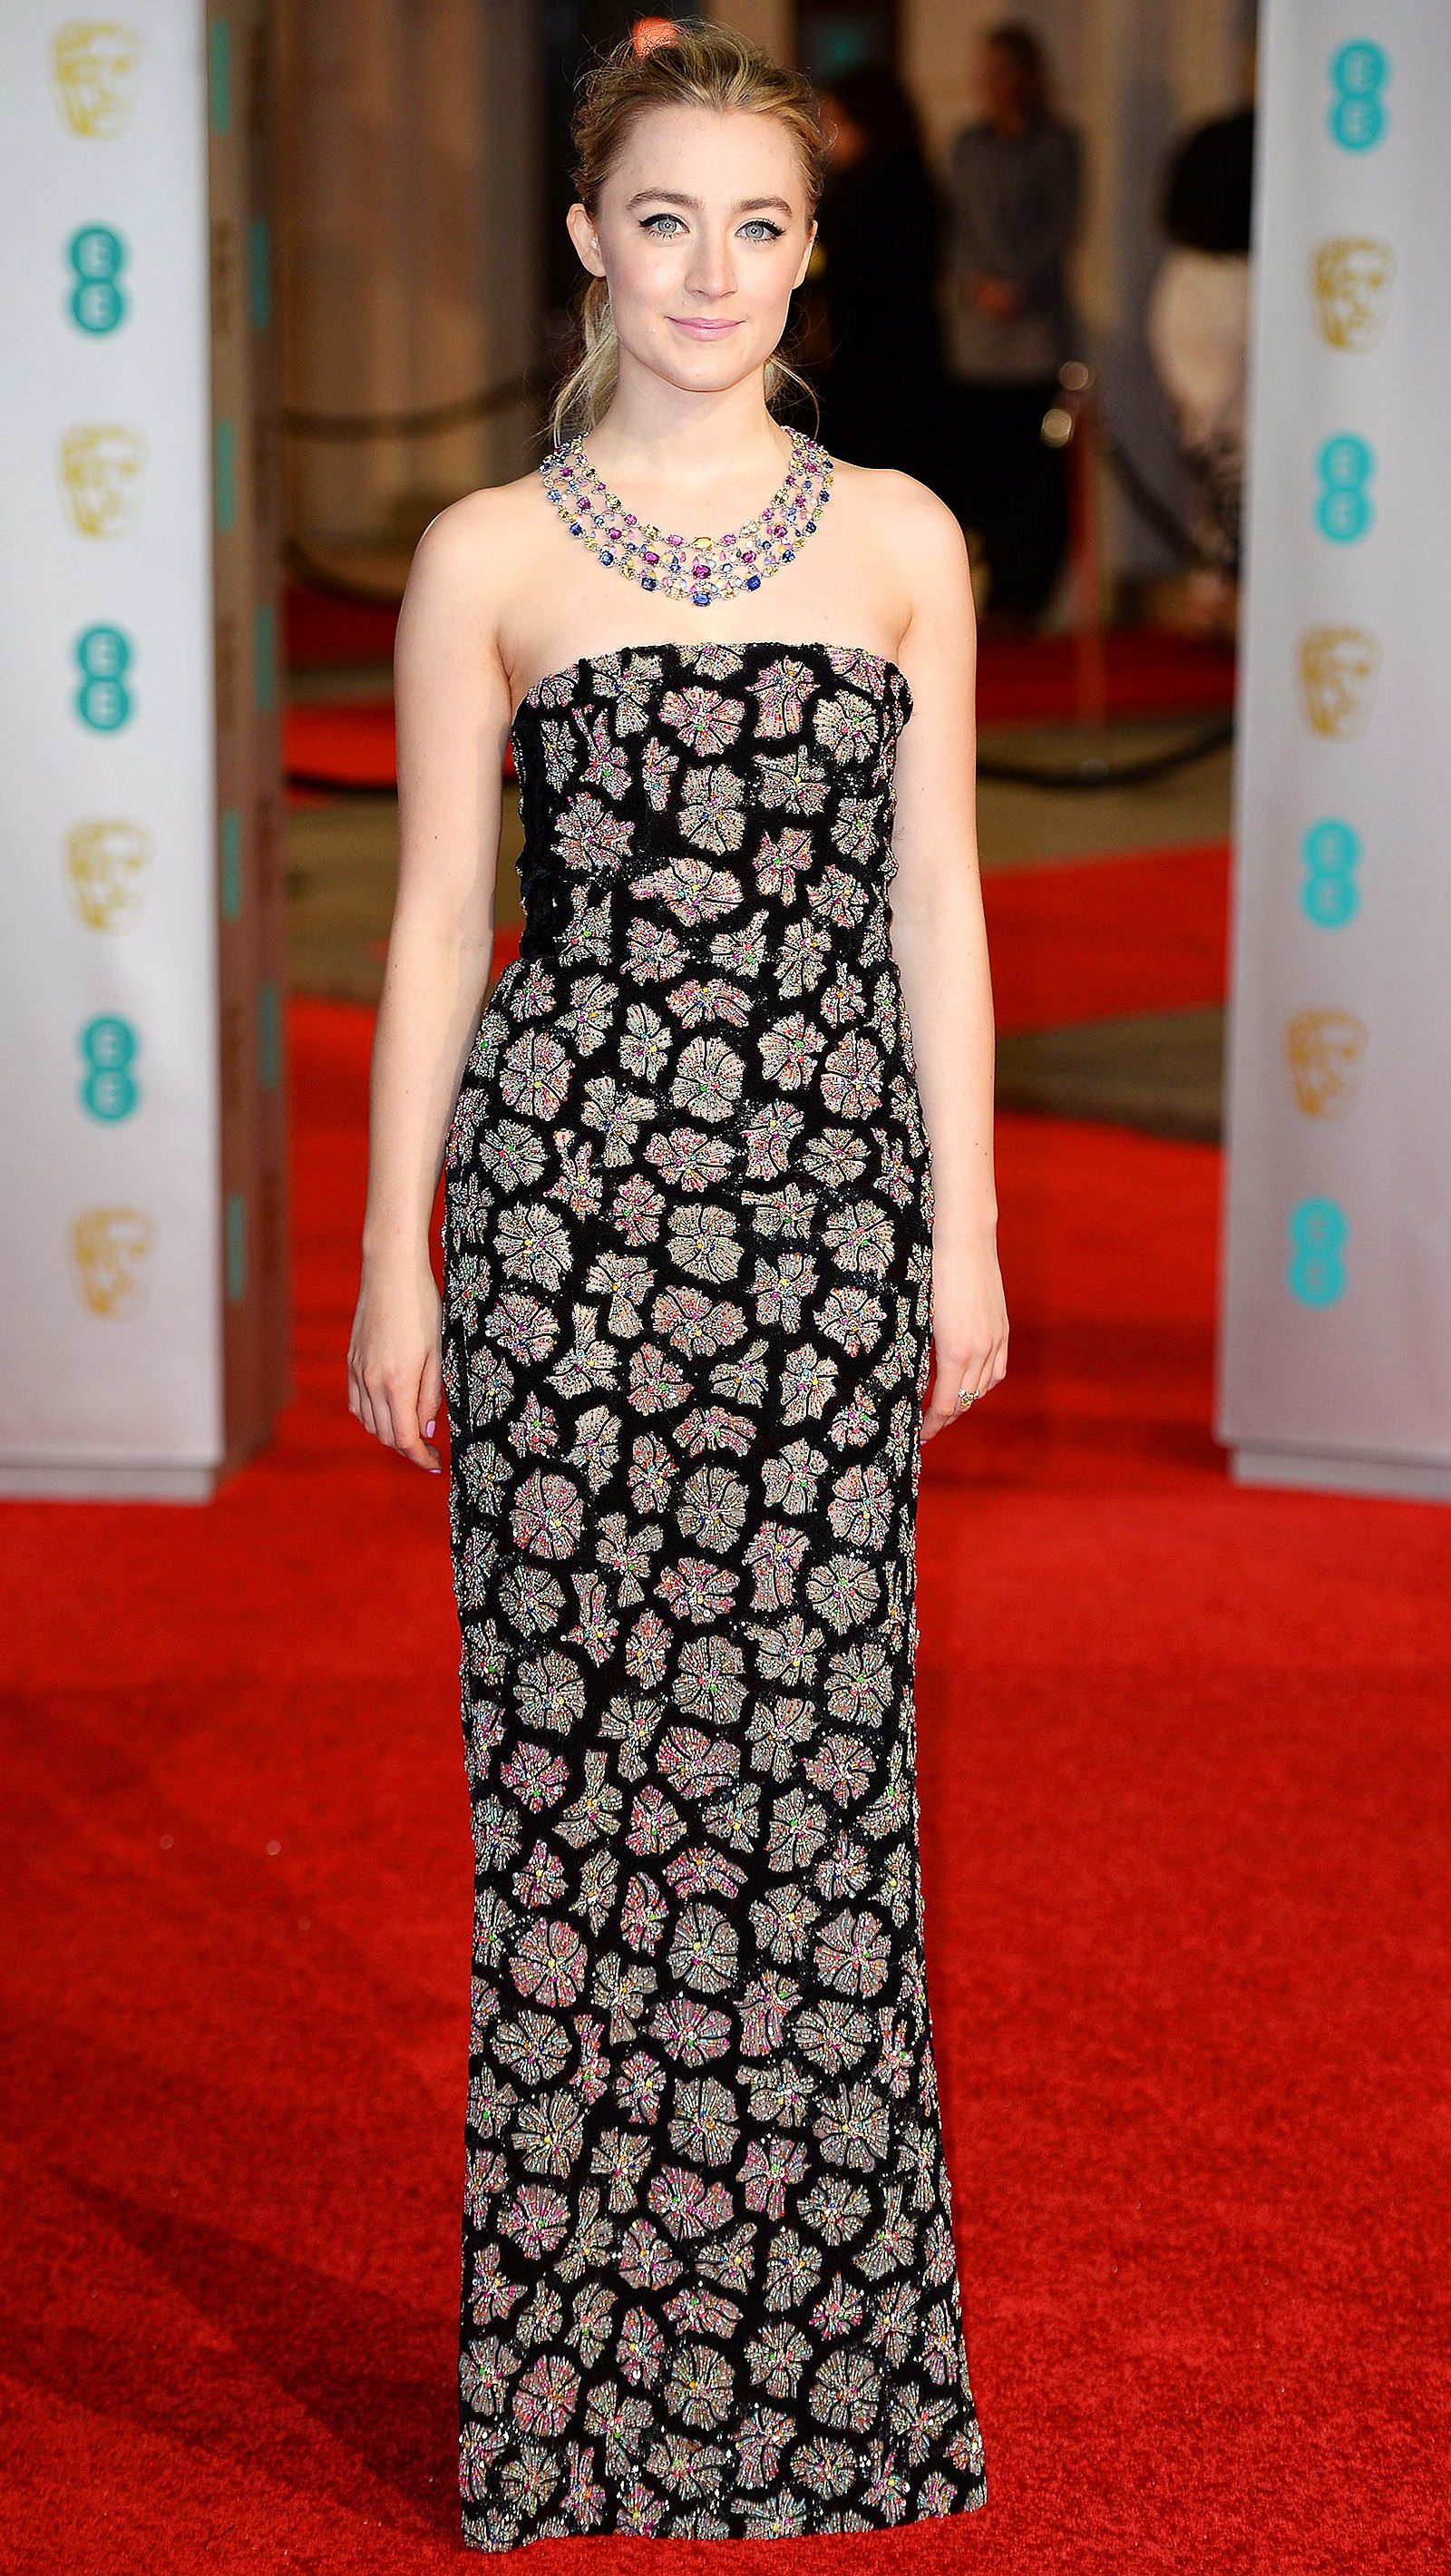 The Gorgeous Gowns Of The Baftas Red Carpet Dresses Red Carpet Outfits Red Carpet Dresses Best